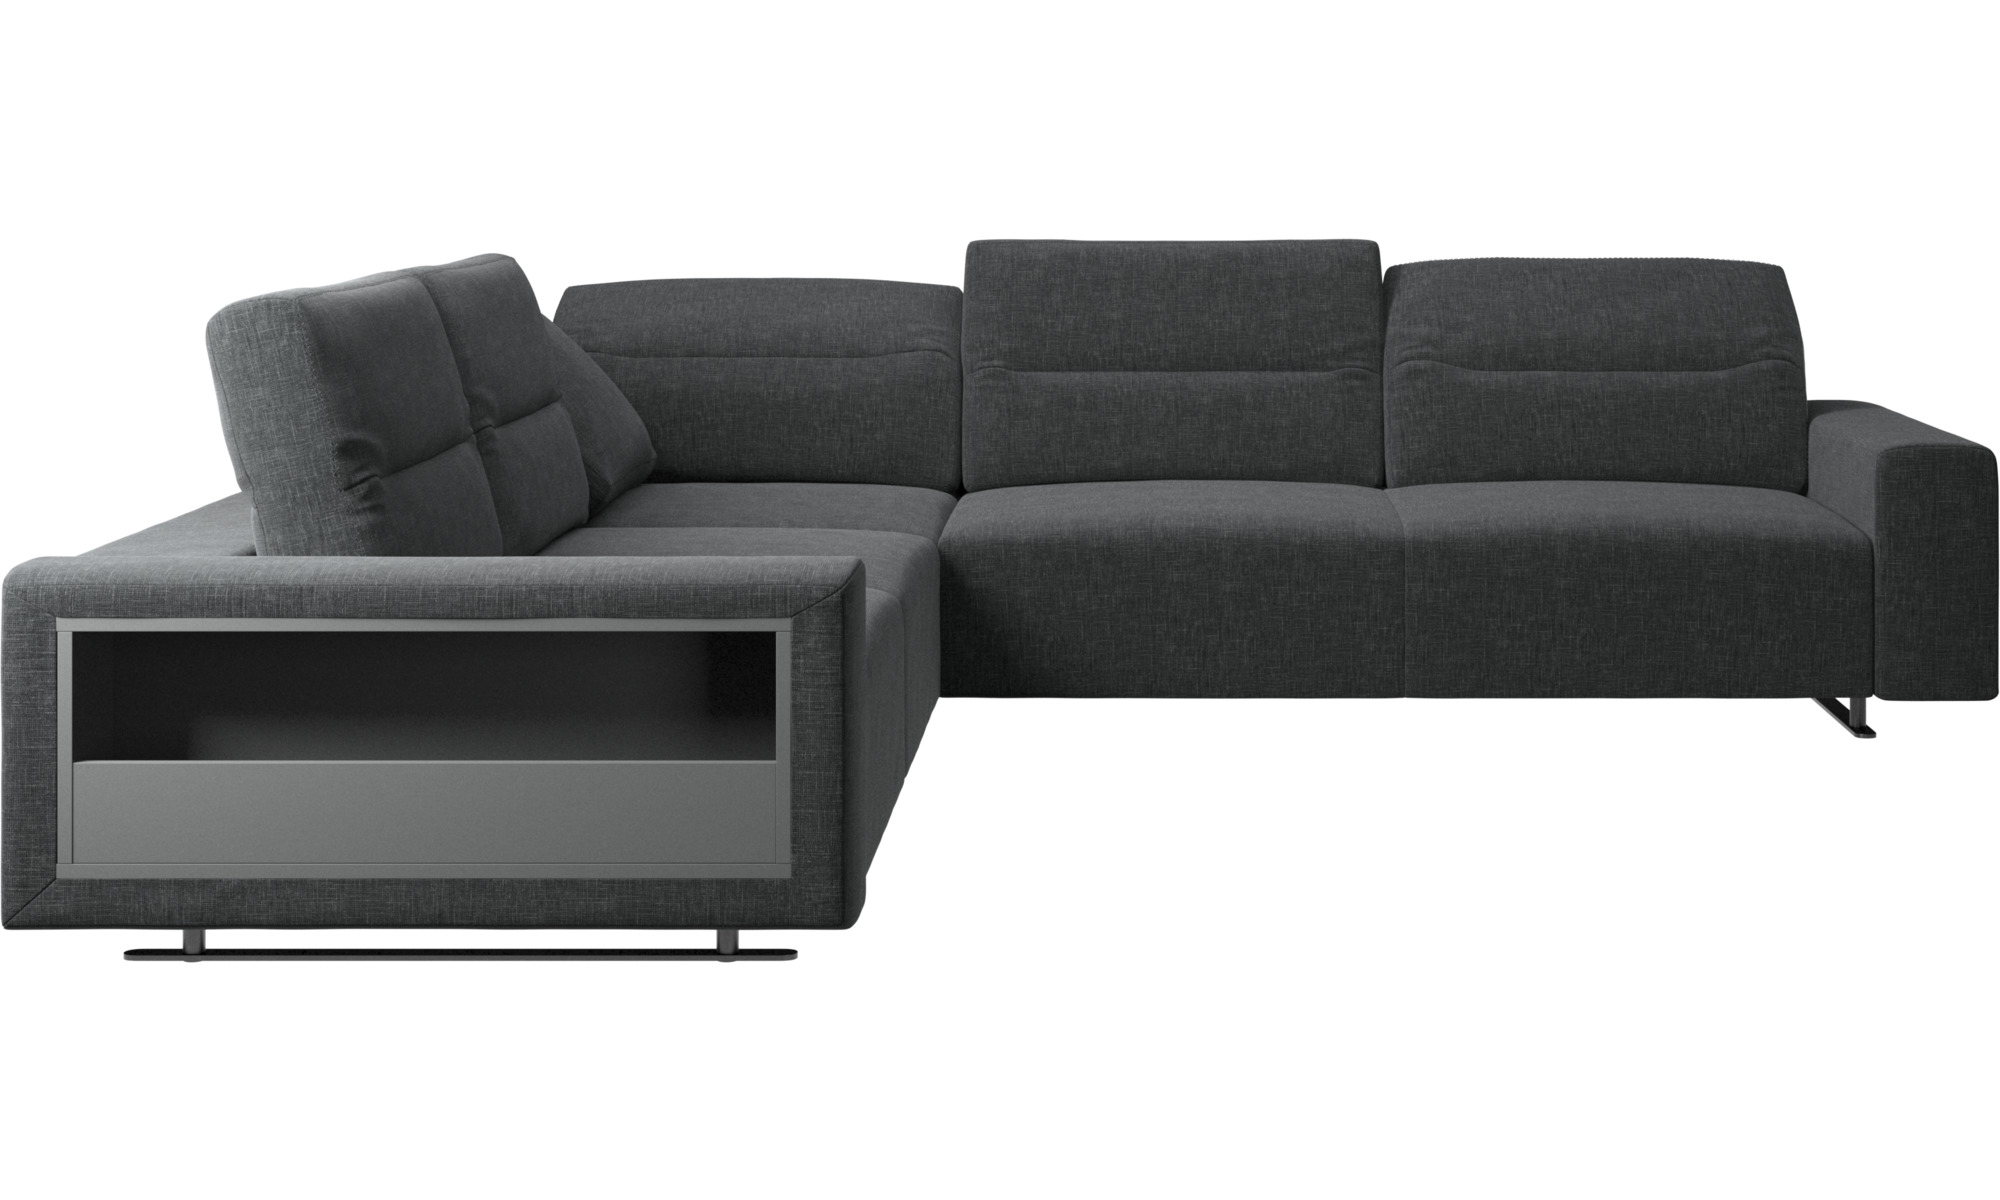 Corner sofas hampton corner sofa with adjustable back and storage on left s - Canape d angle dehoussable ...